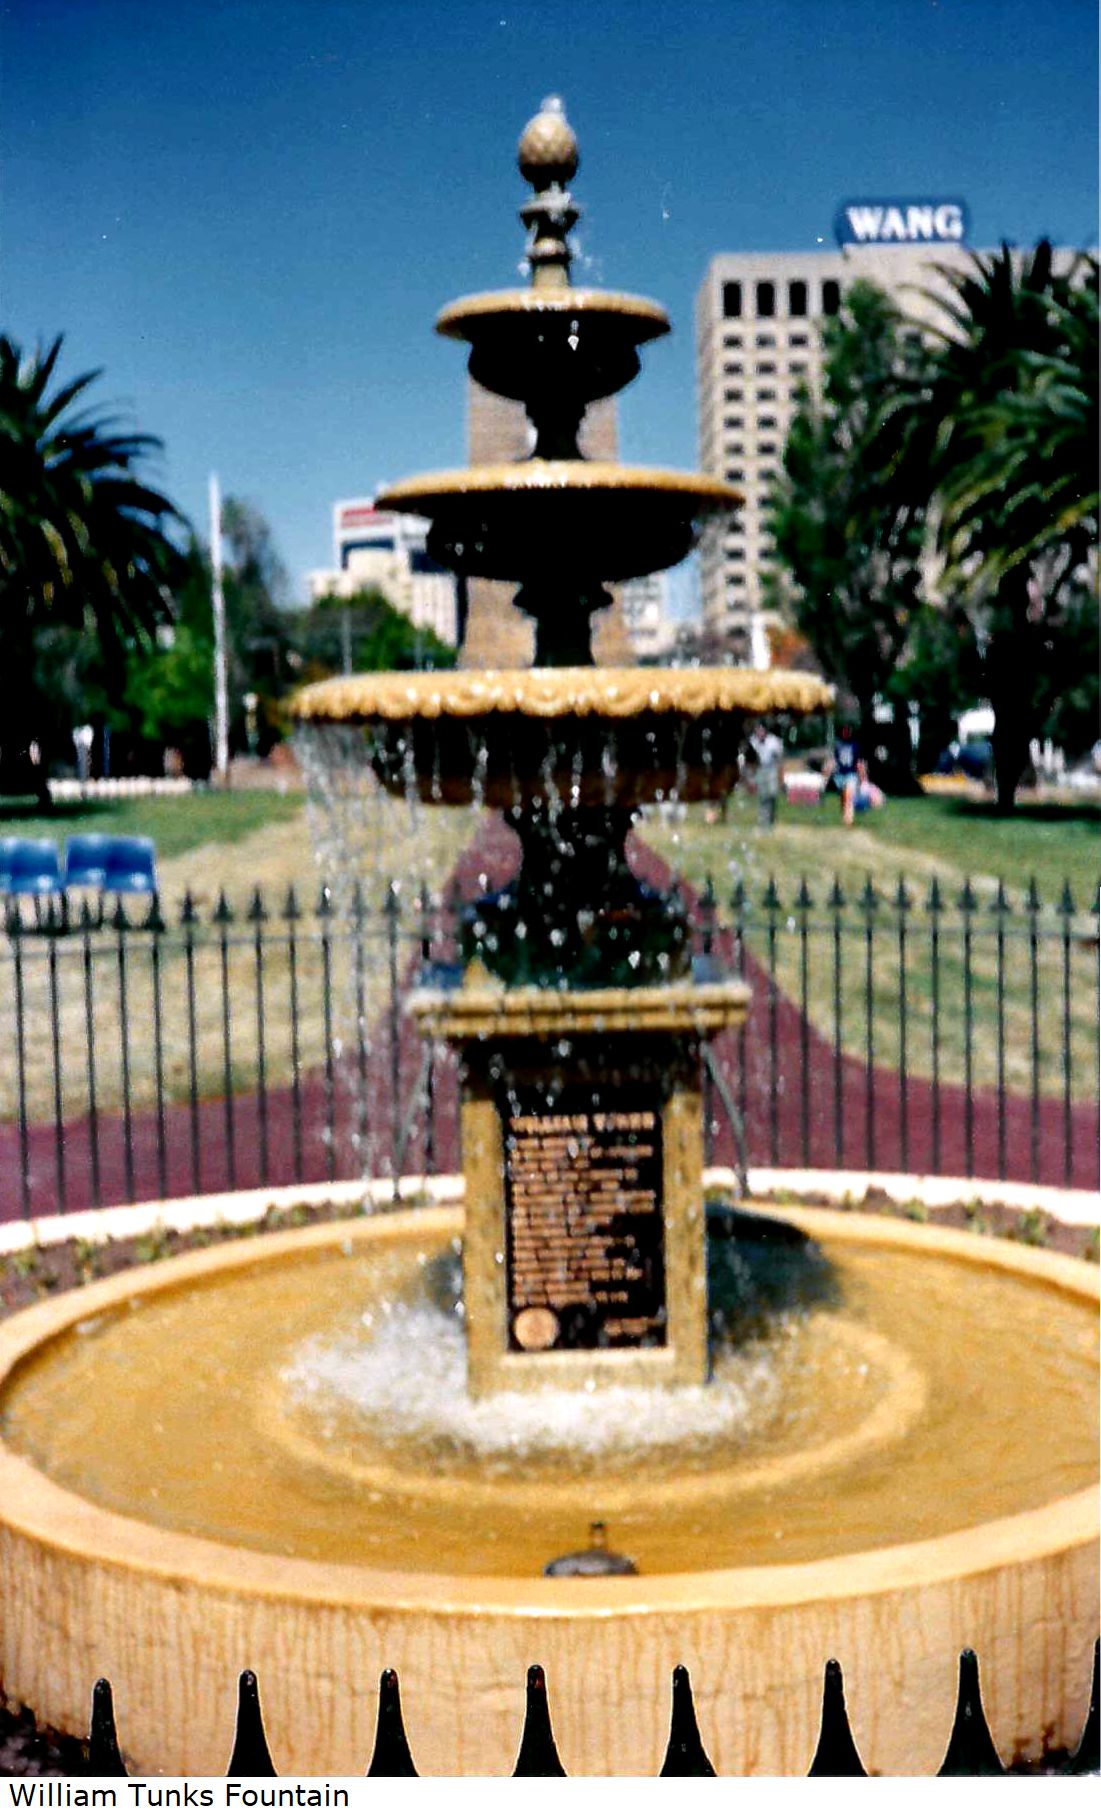 William Tunks II Fountain